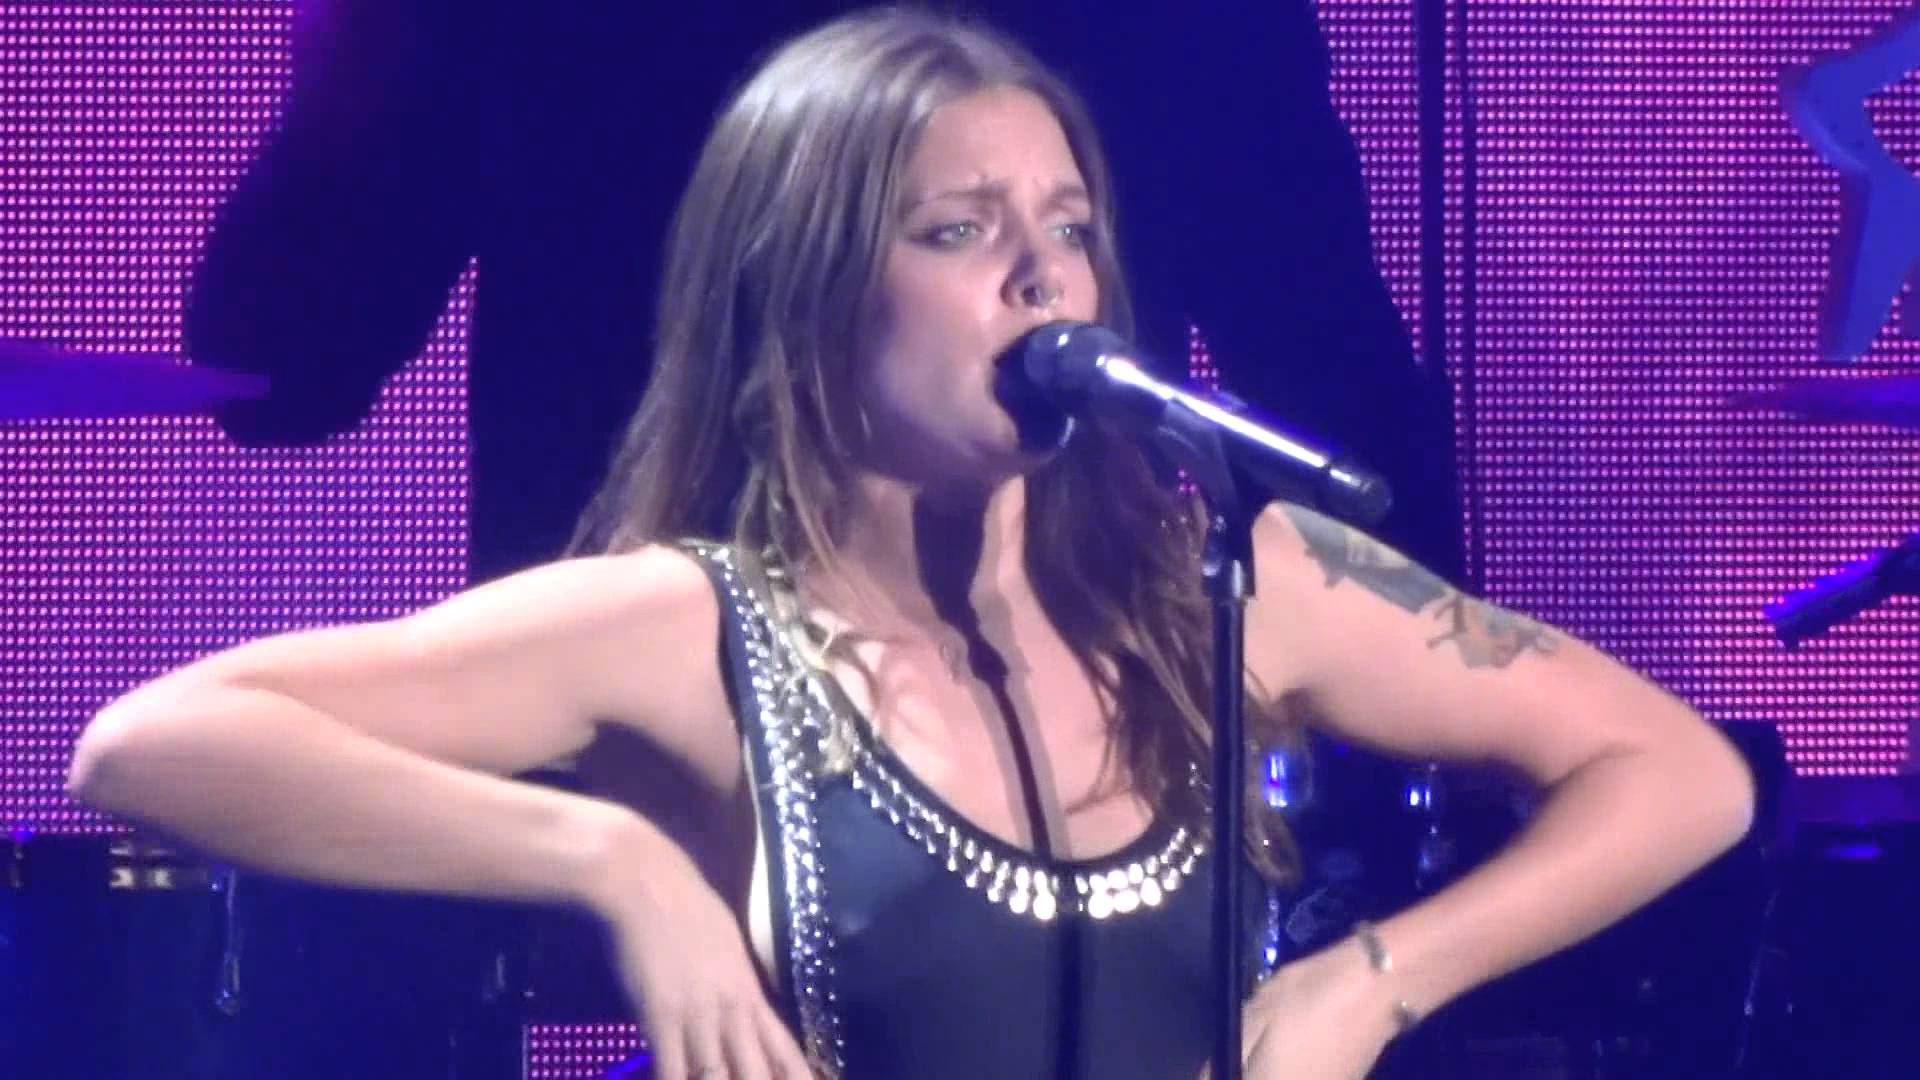 2019 Tove Lo nudes (17 photo), Sexy, Leaked, Boobs, butt 2006